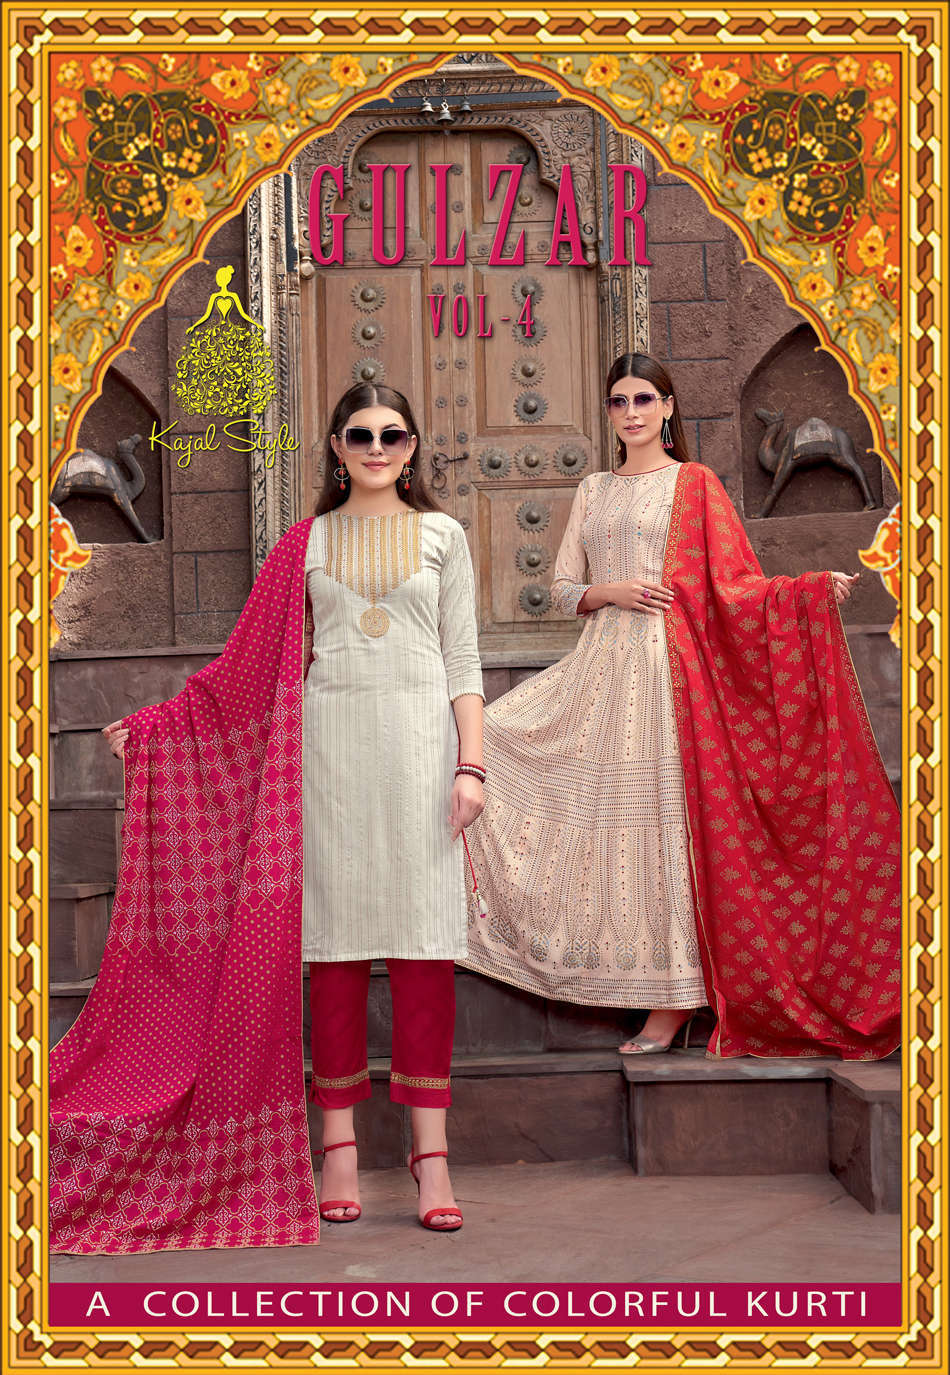 Kajal Style Gulzar Vol 4 Kurti with Dupatta Bottom Wholesale Catalog 8 Pcs 1 - Kajal Style Gulzar Vol 4 Kurti with Dupatta Bottom Wholesale Catalog 8 Pcs